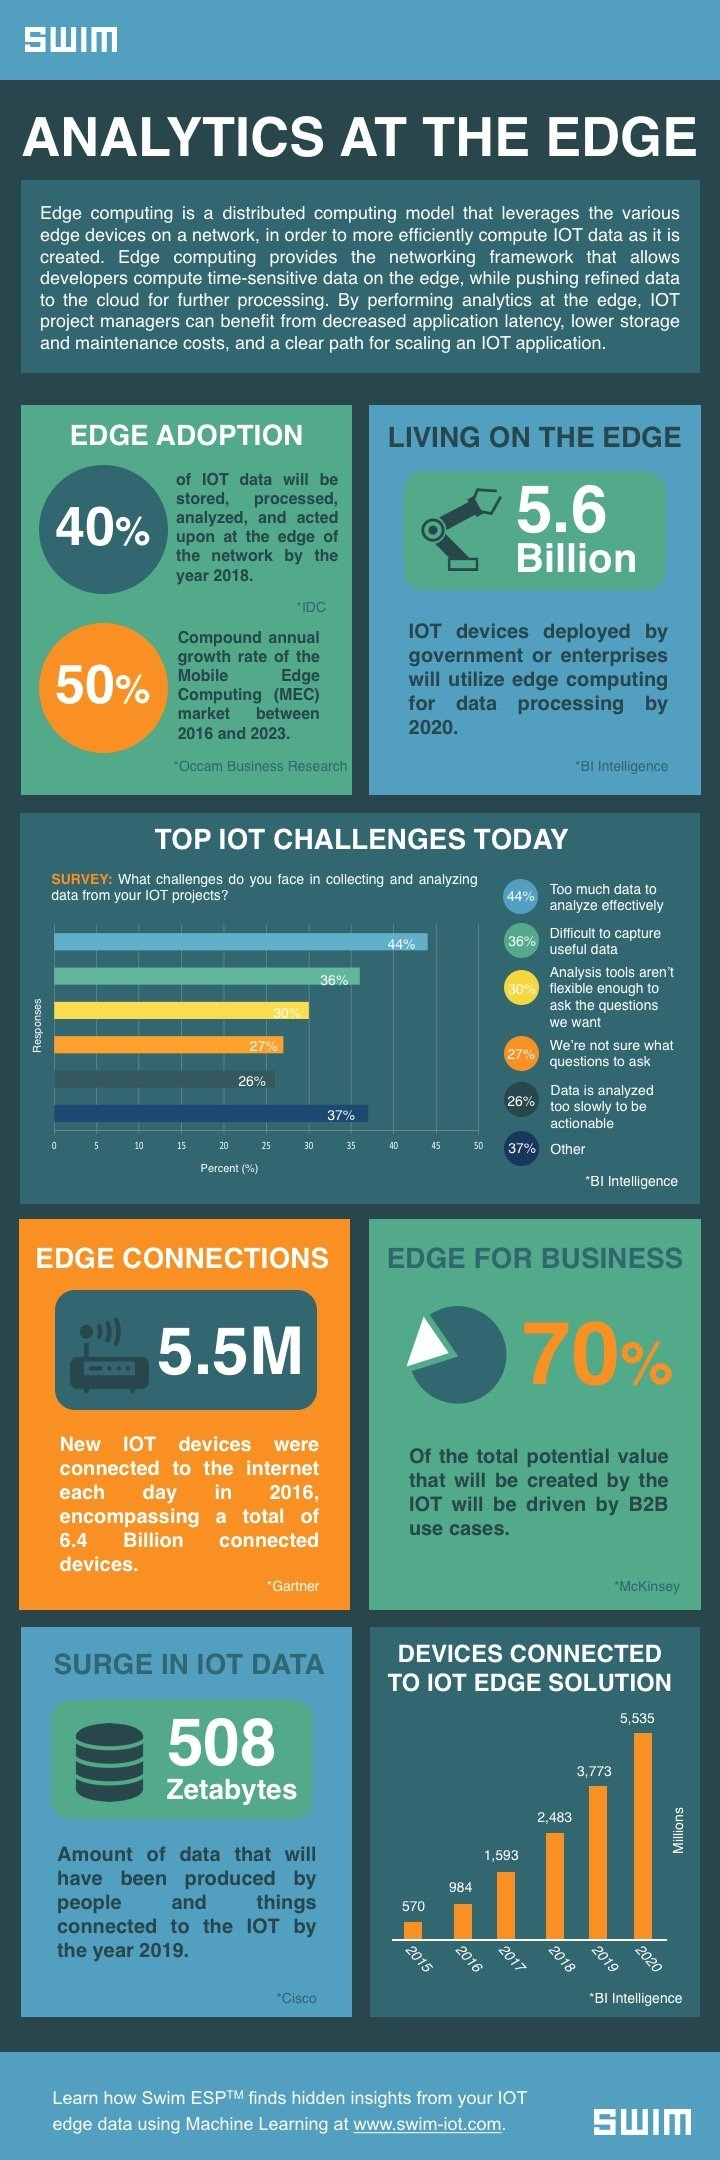 Swim_Analytics at the Edge_Infographic